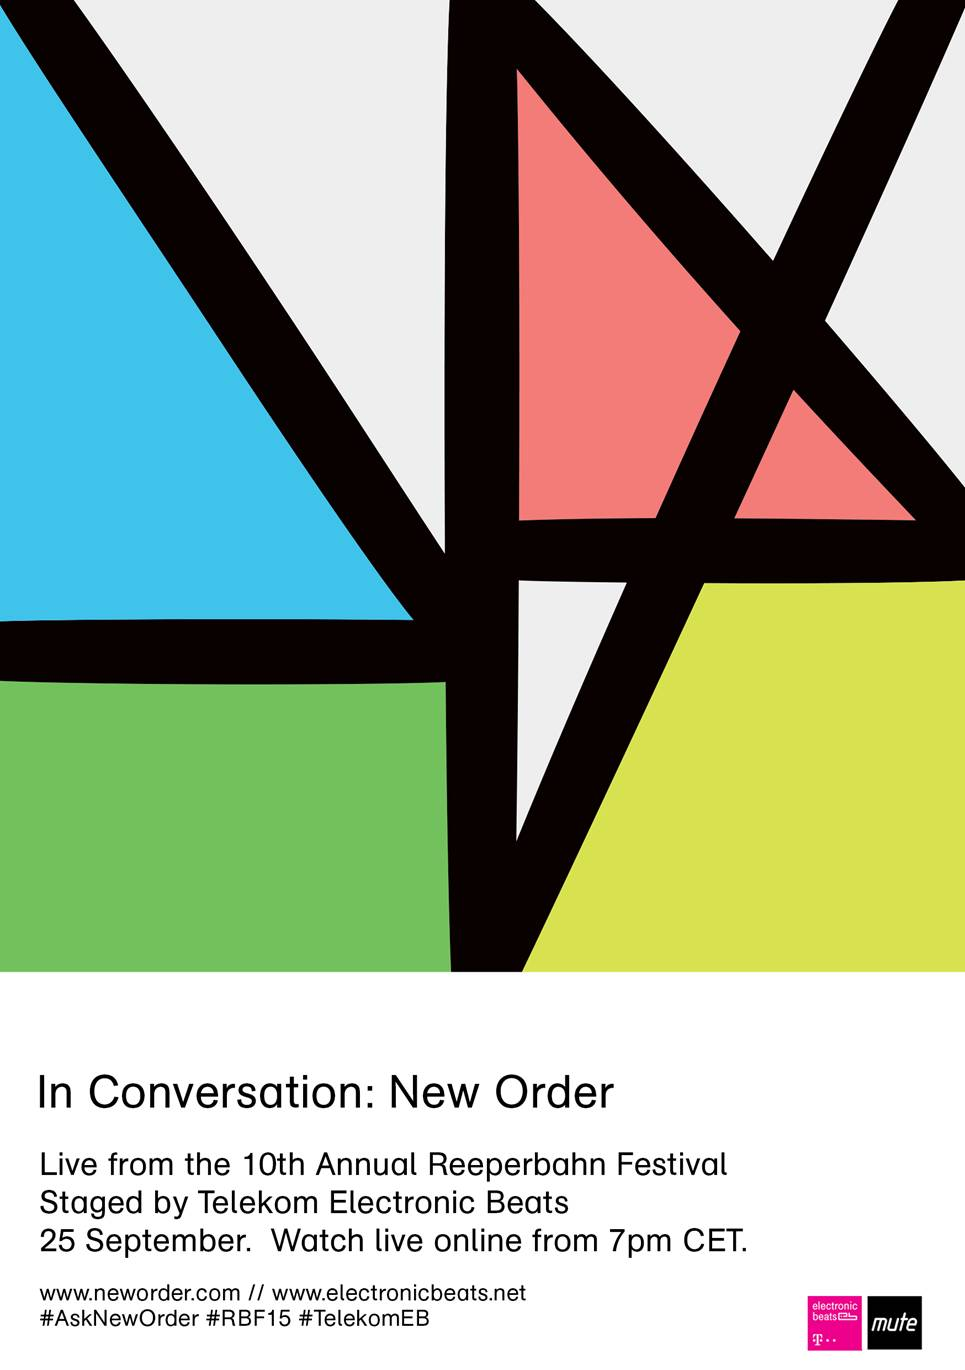 new order in conversation Poster